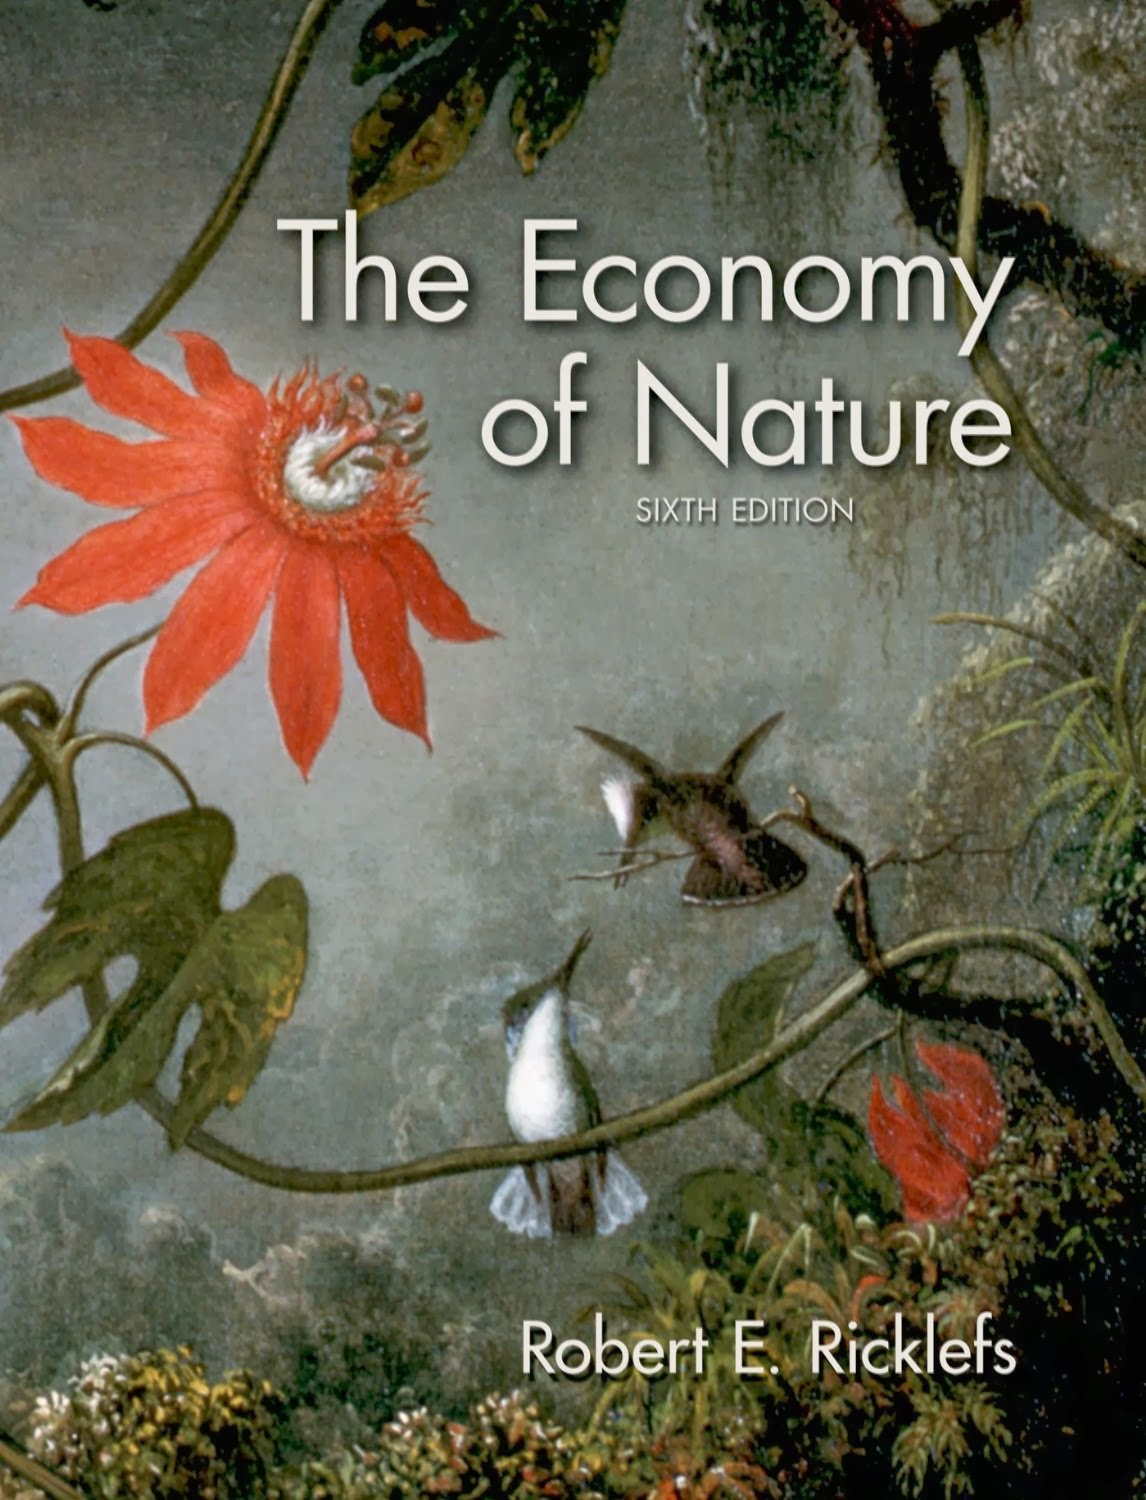 Test Bank Economy of Nature 6th Edition Ricklefs